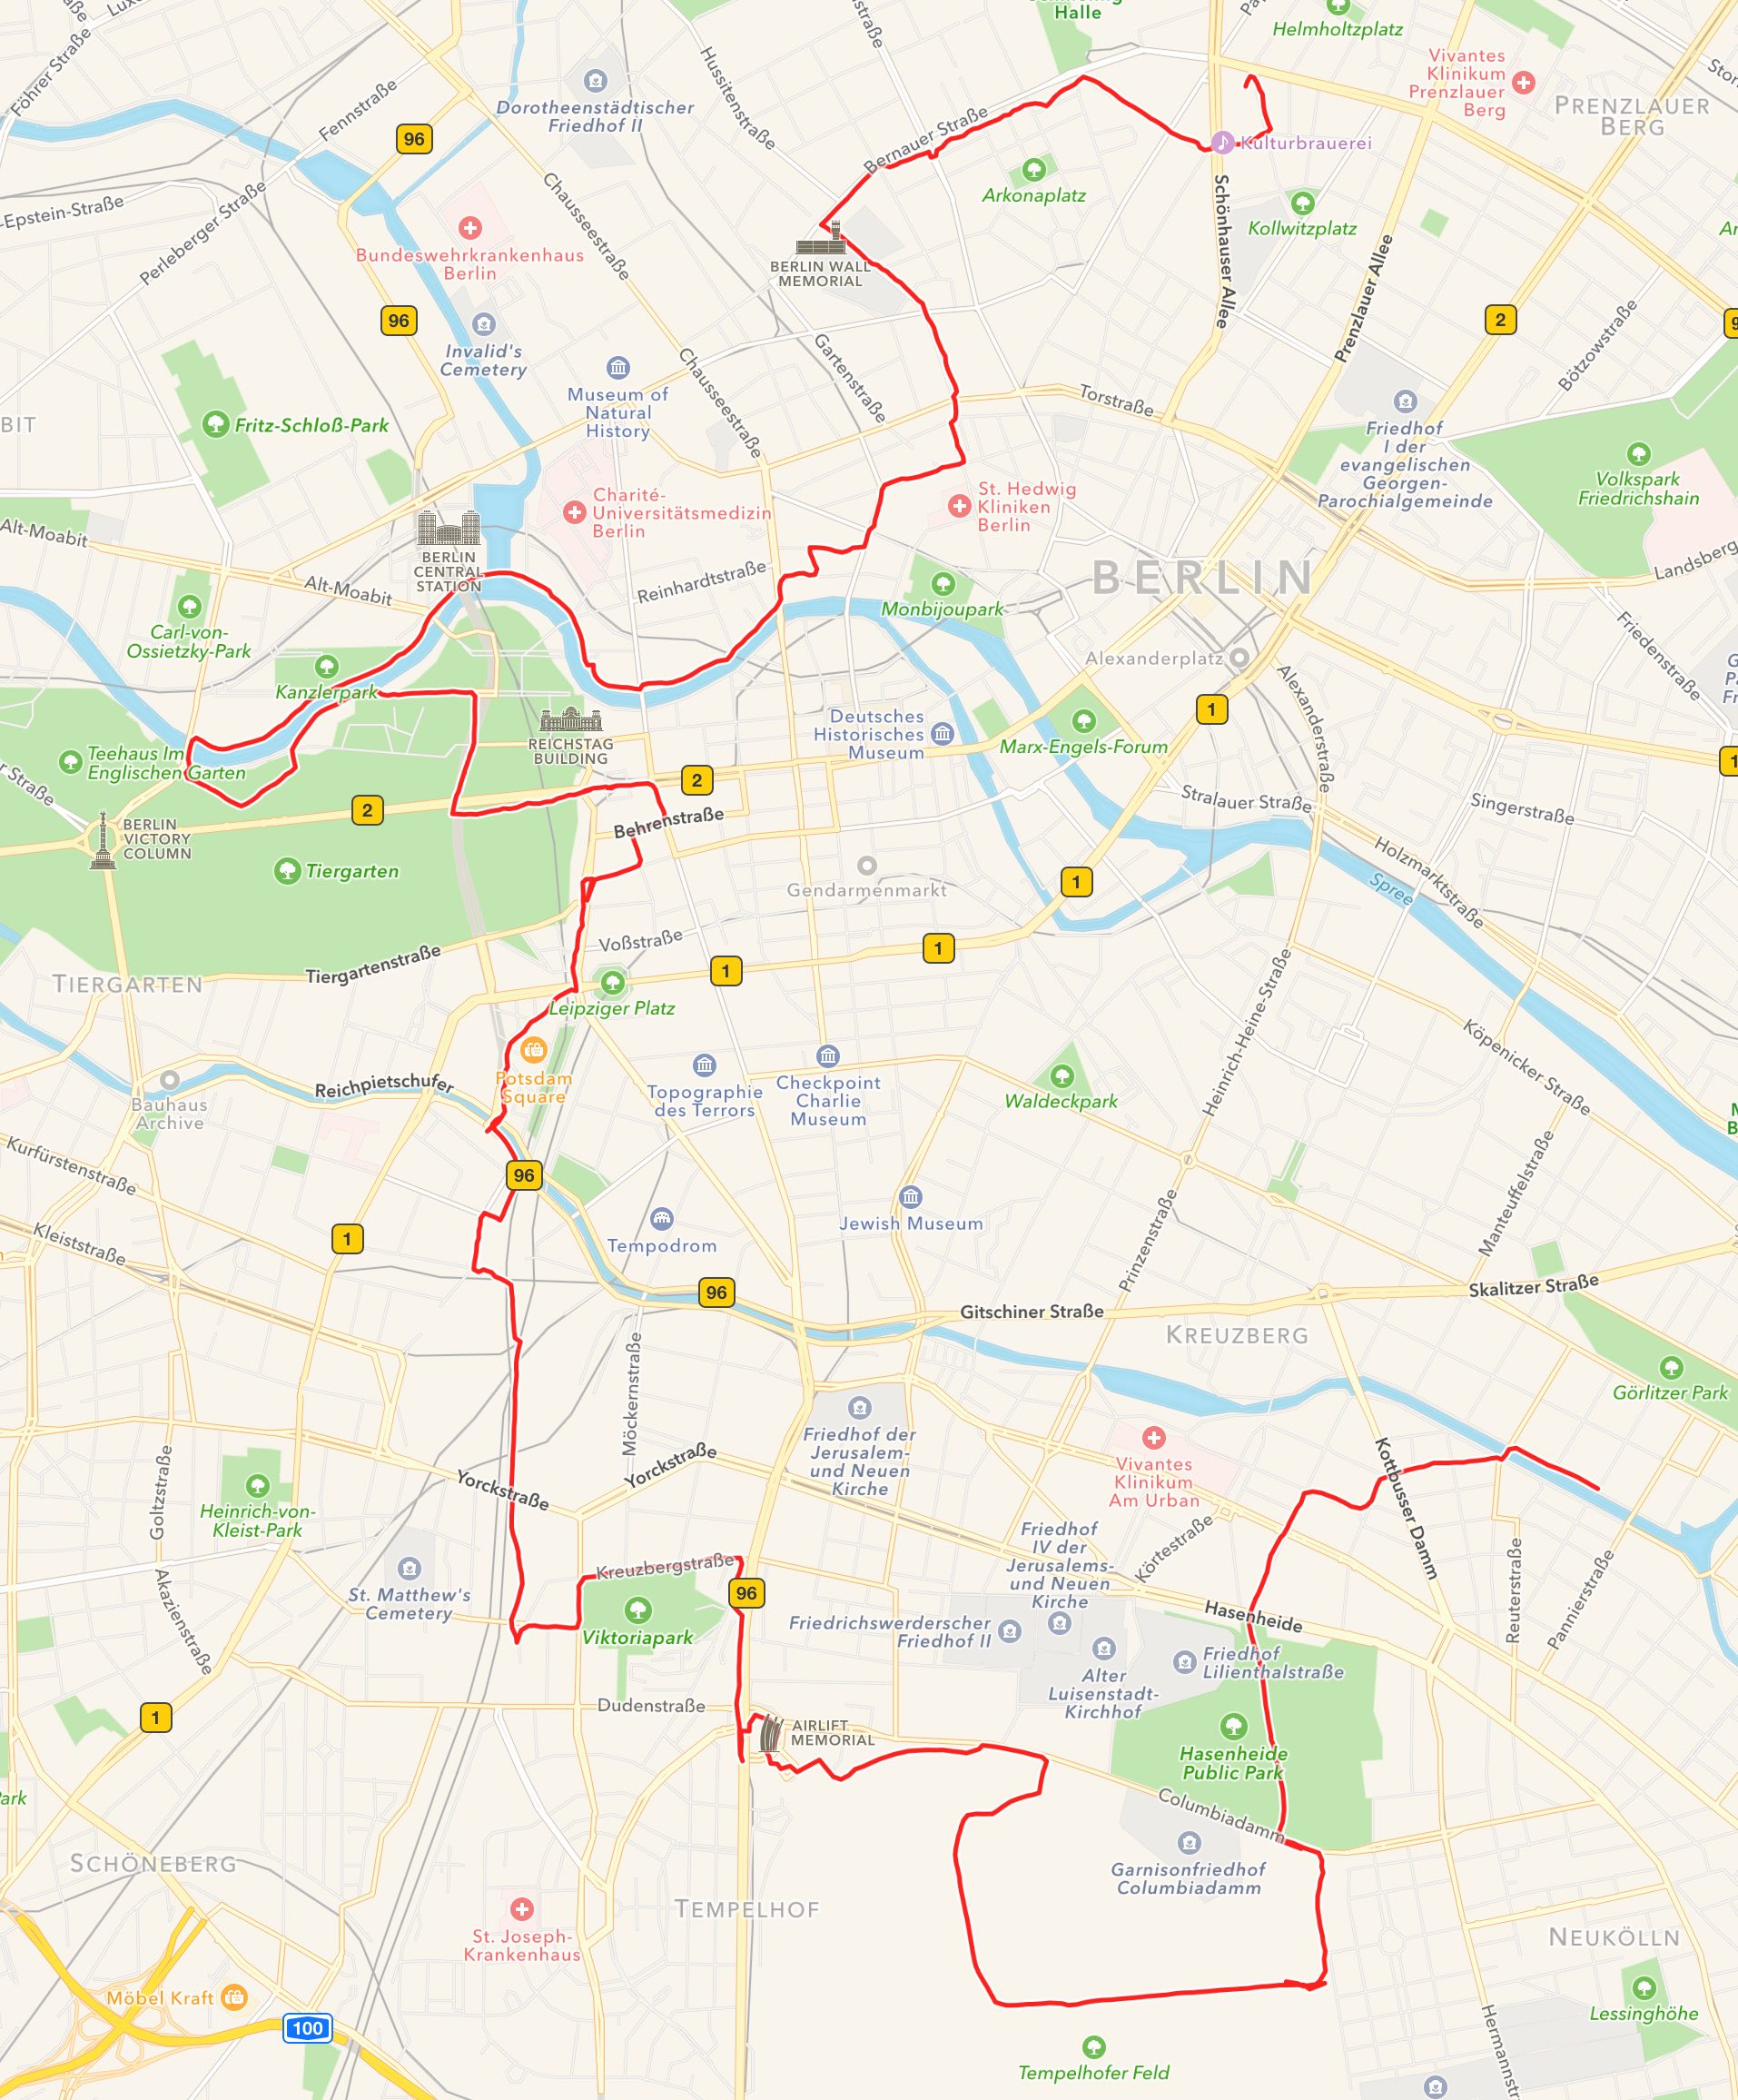 The route of the UIKonf Bike Tour 2016